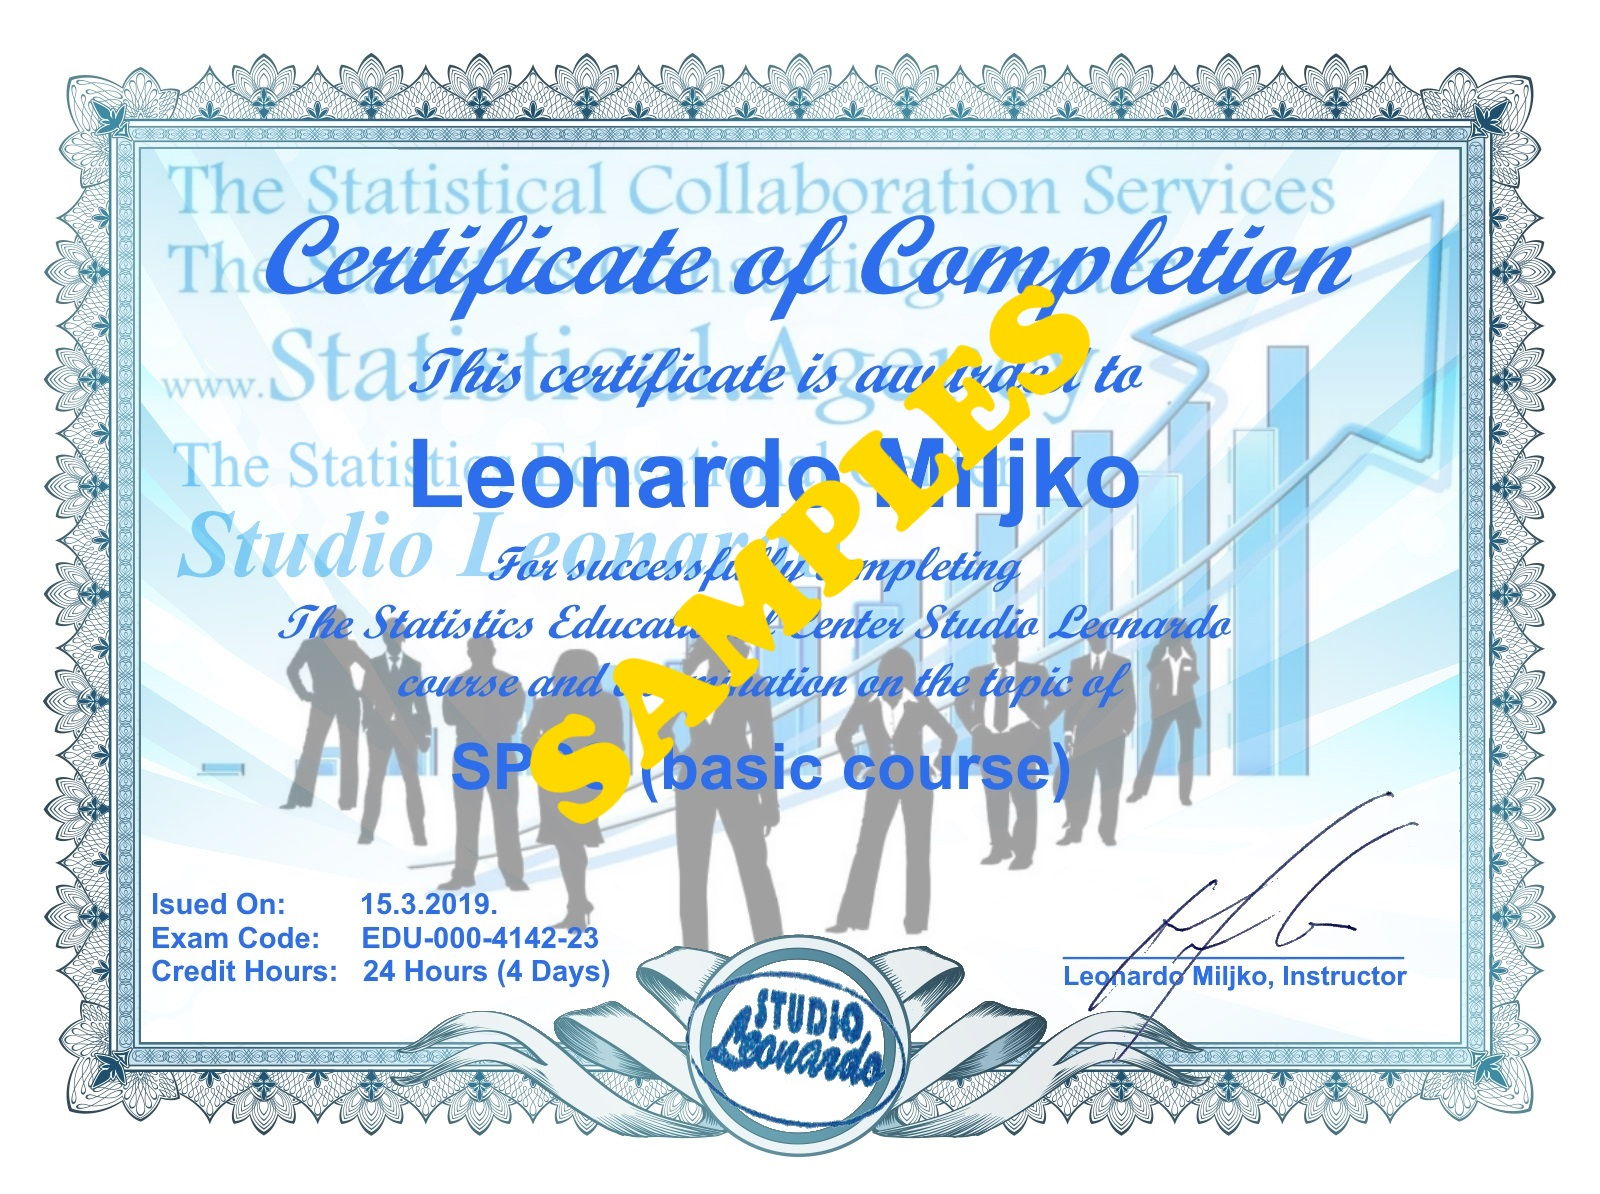 Template - SAMPLE-Certificate of Completion This certificate is awarded to Leonardo Miljko For successfully completing the The Statistics Educational Center Studio Leonardo course and examination on the topic of